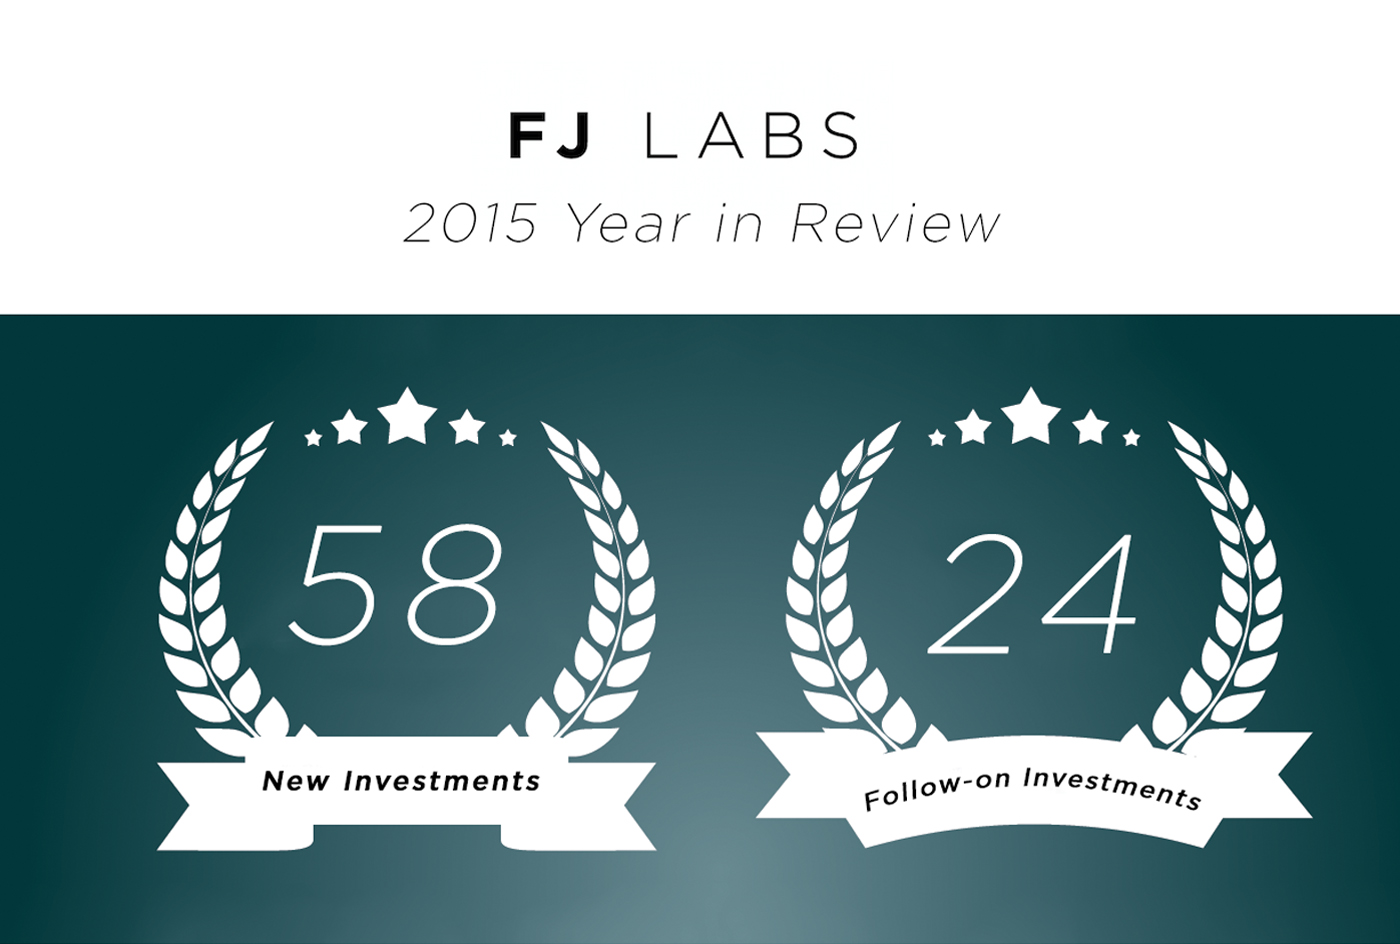 fjlabs 2015 in review feature image